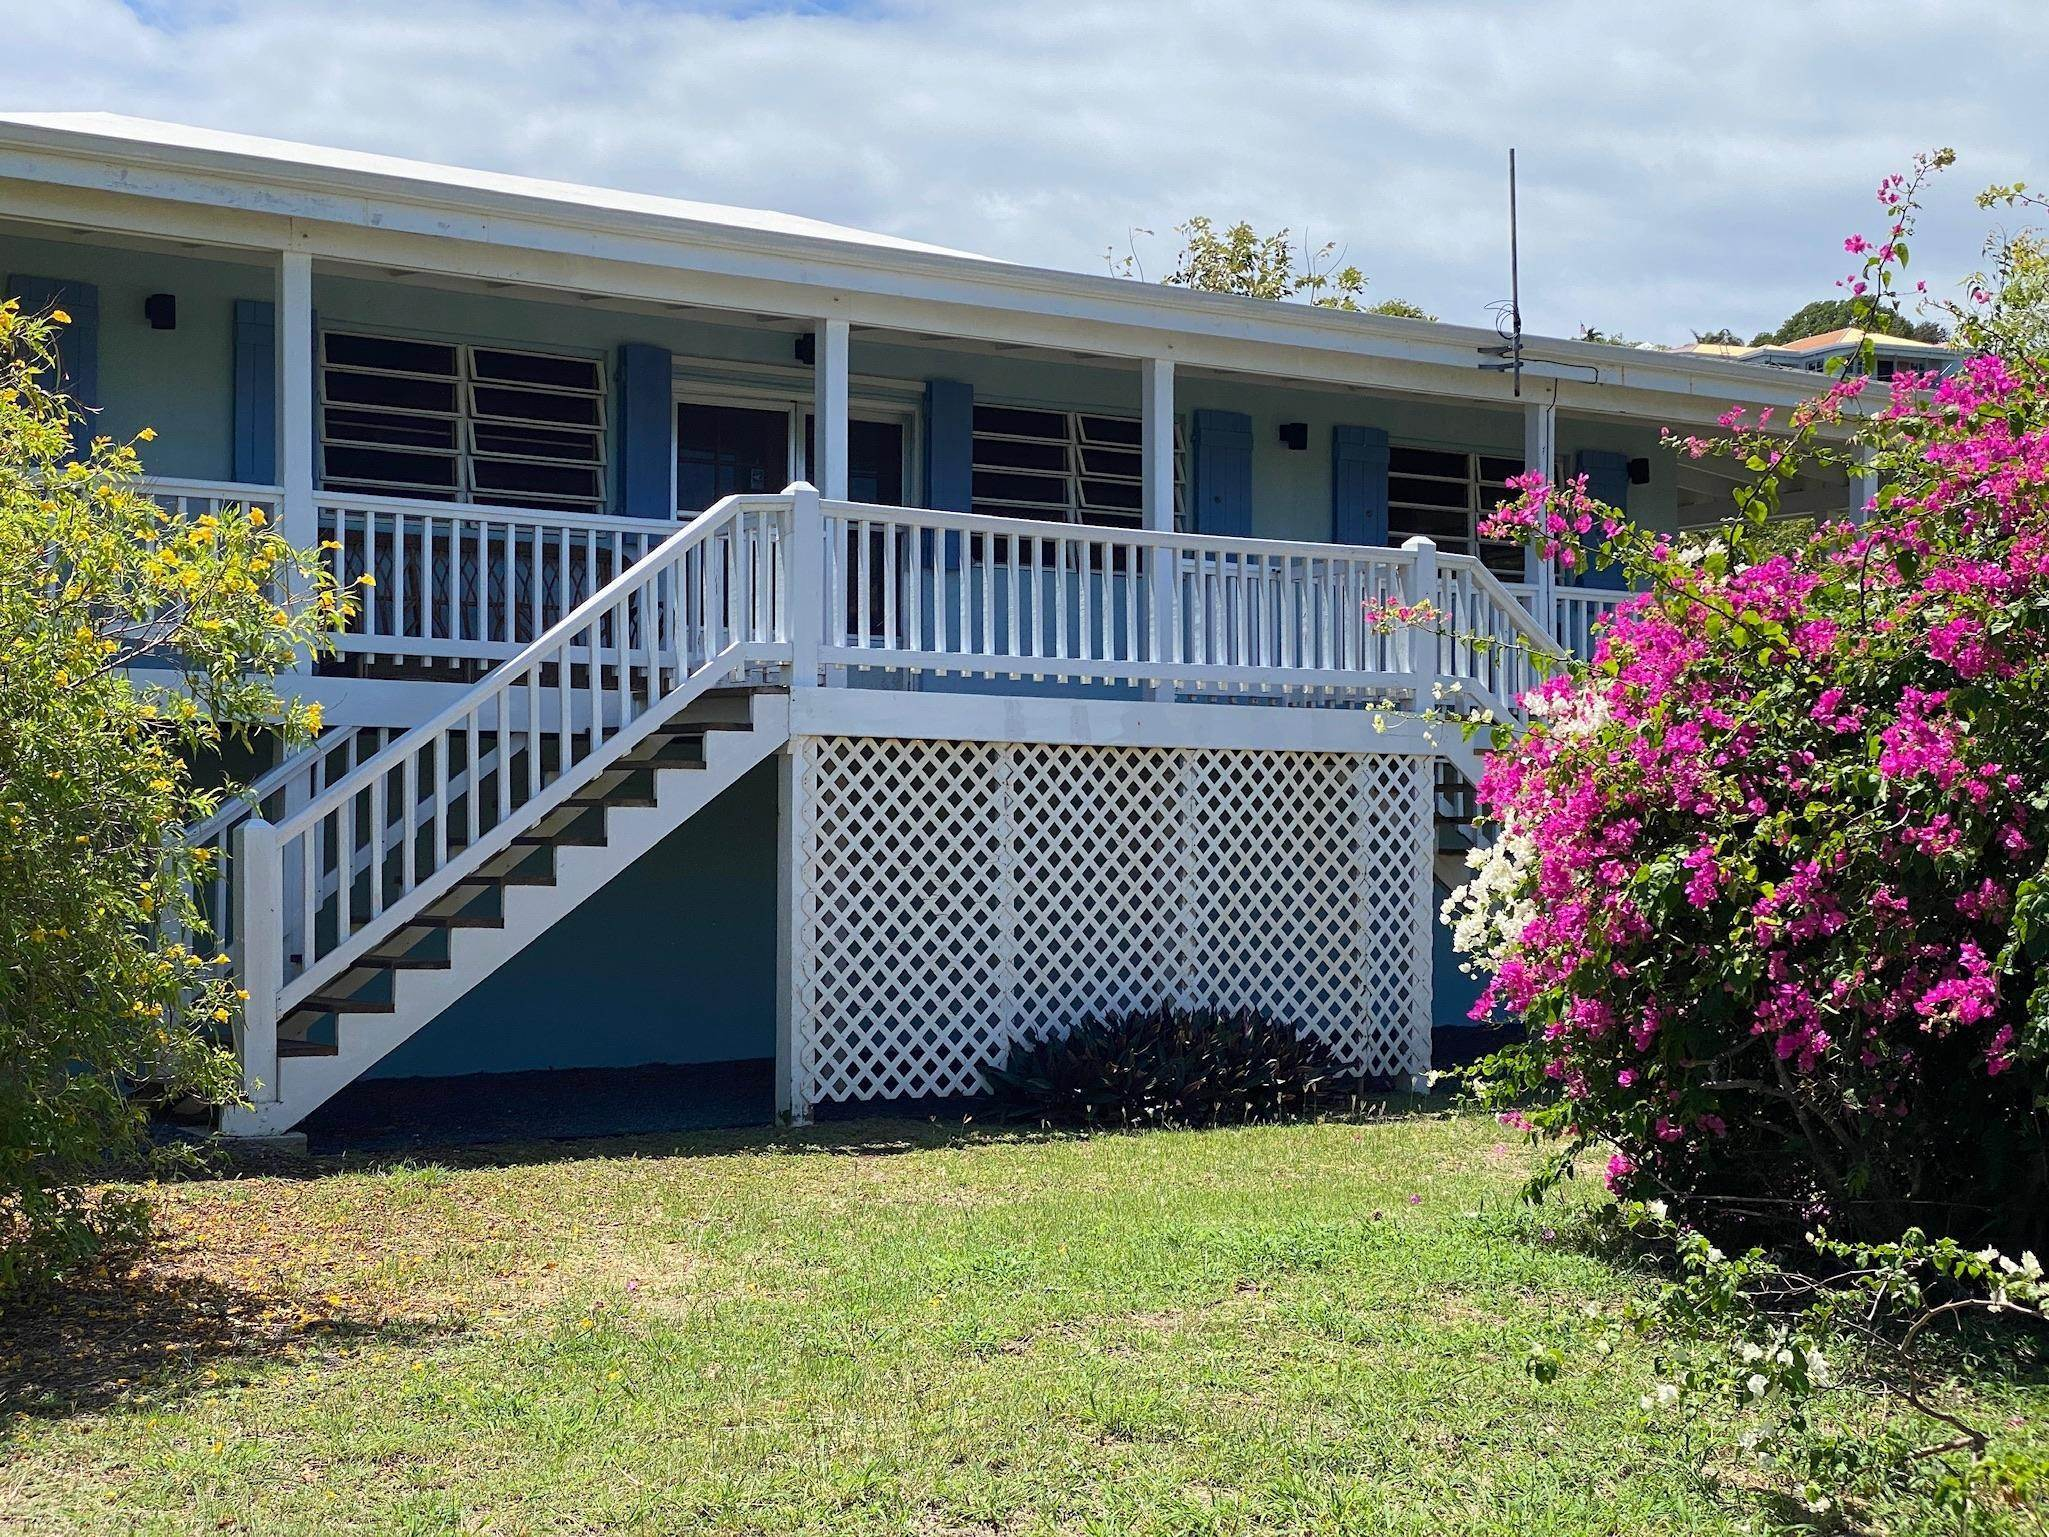 Single Family Homes for Sale at 273 Cotton Valley EB St Croix, Virgin Islands 00820 United States Virgin Islands